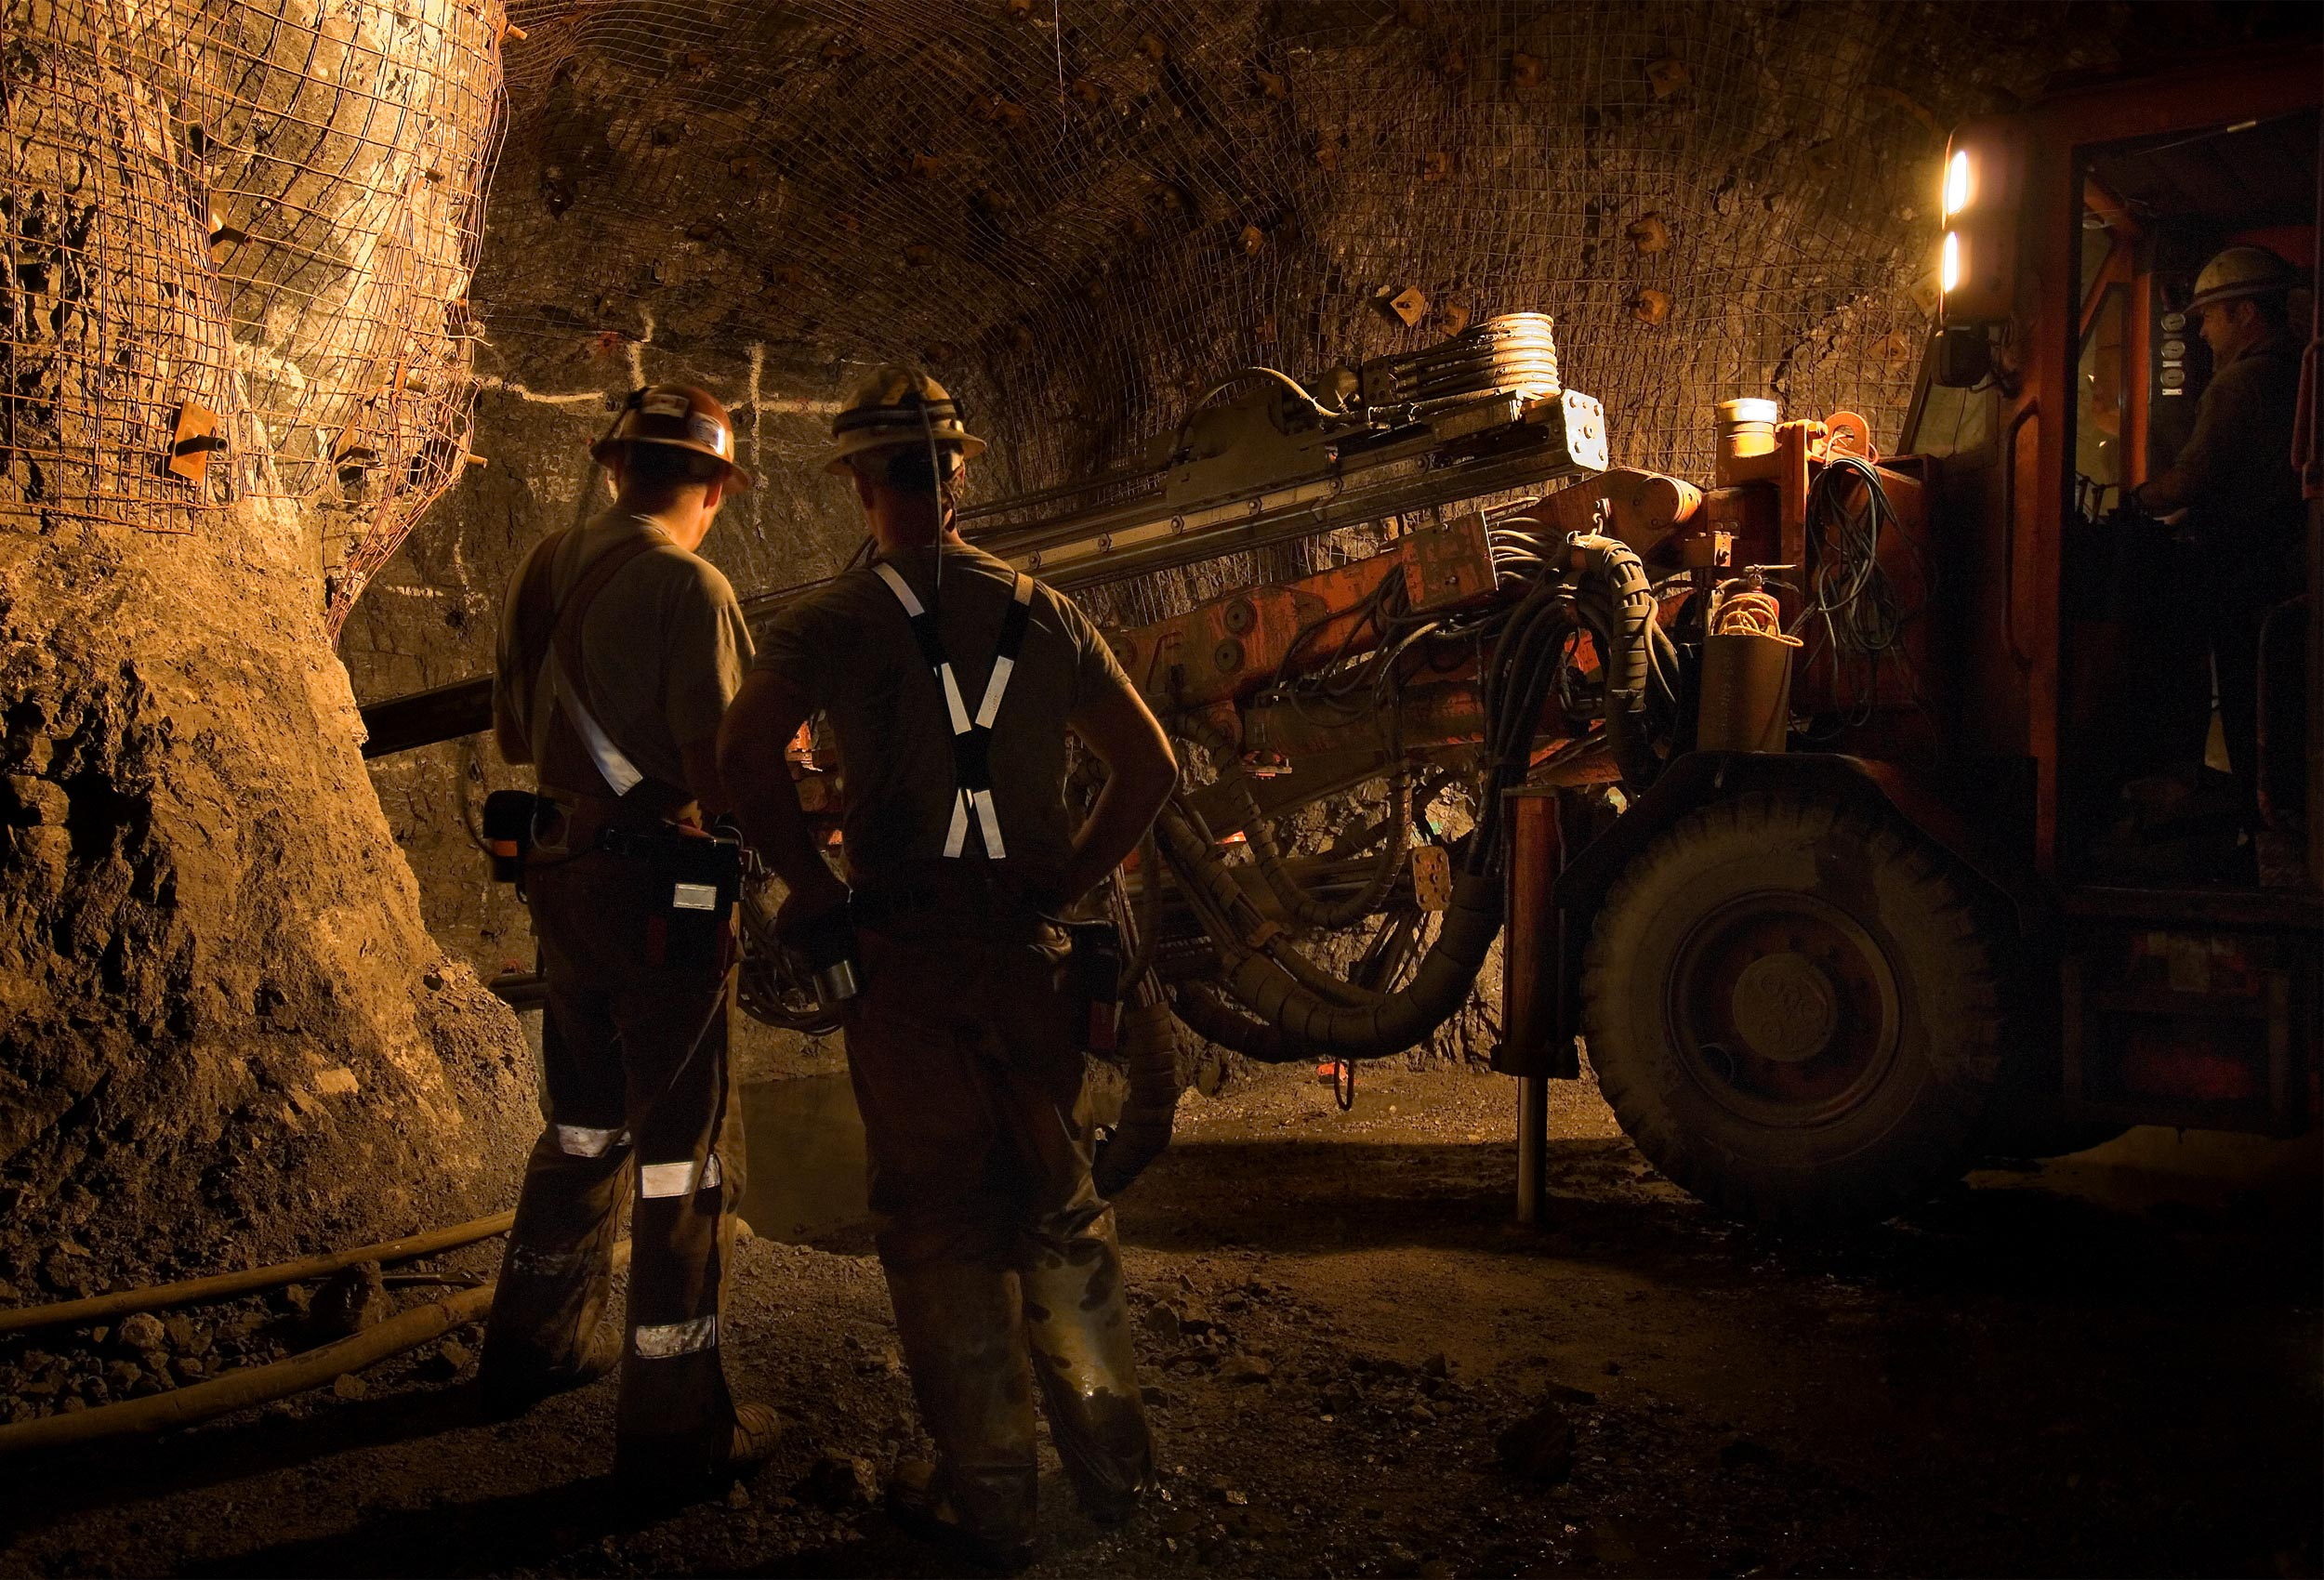 Underground zinc mine by corporate industrial photographer Kristopher Grunert